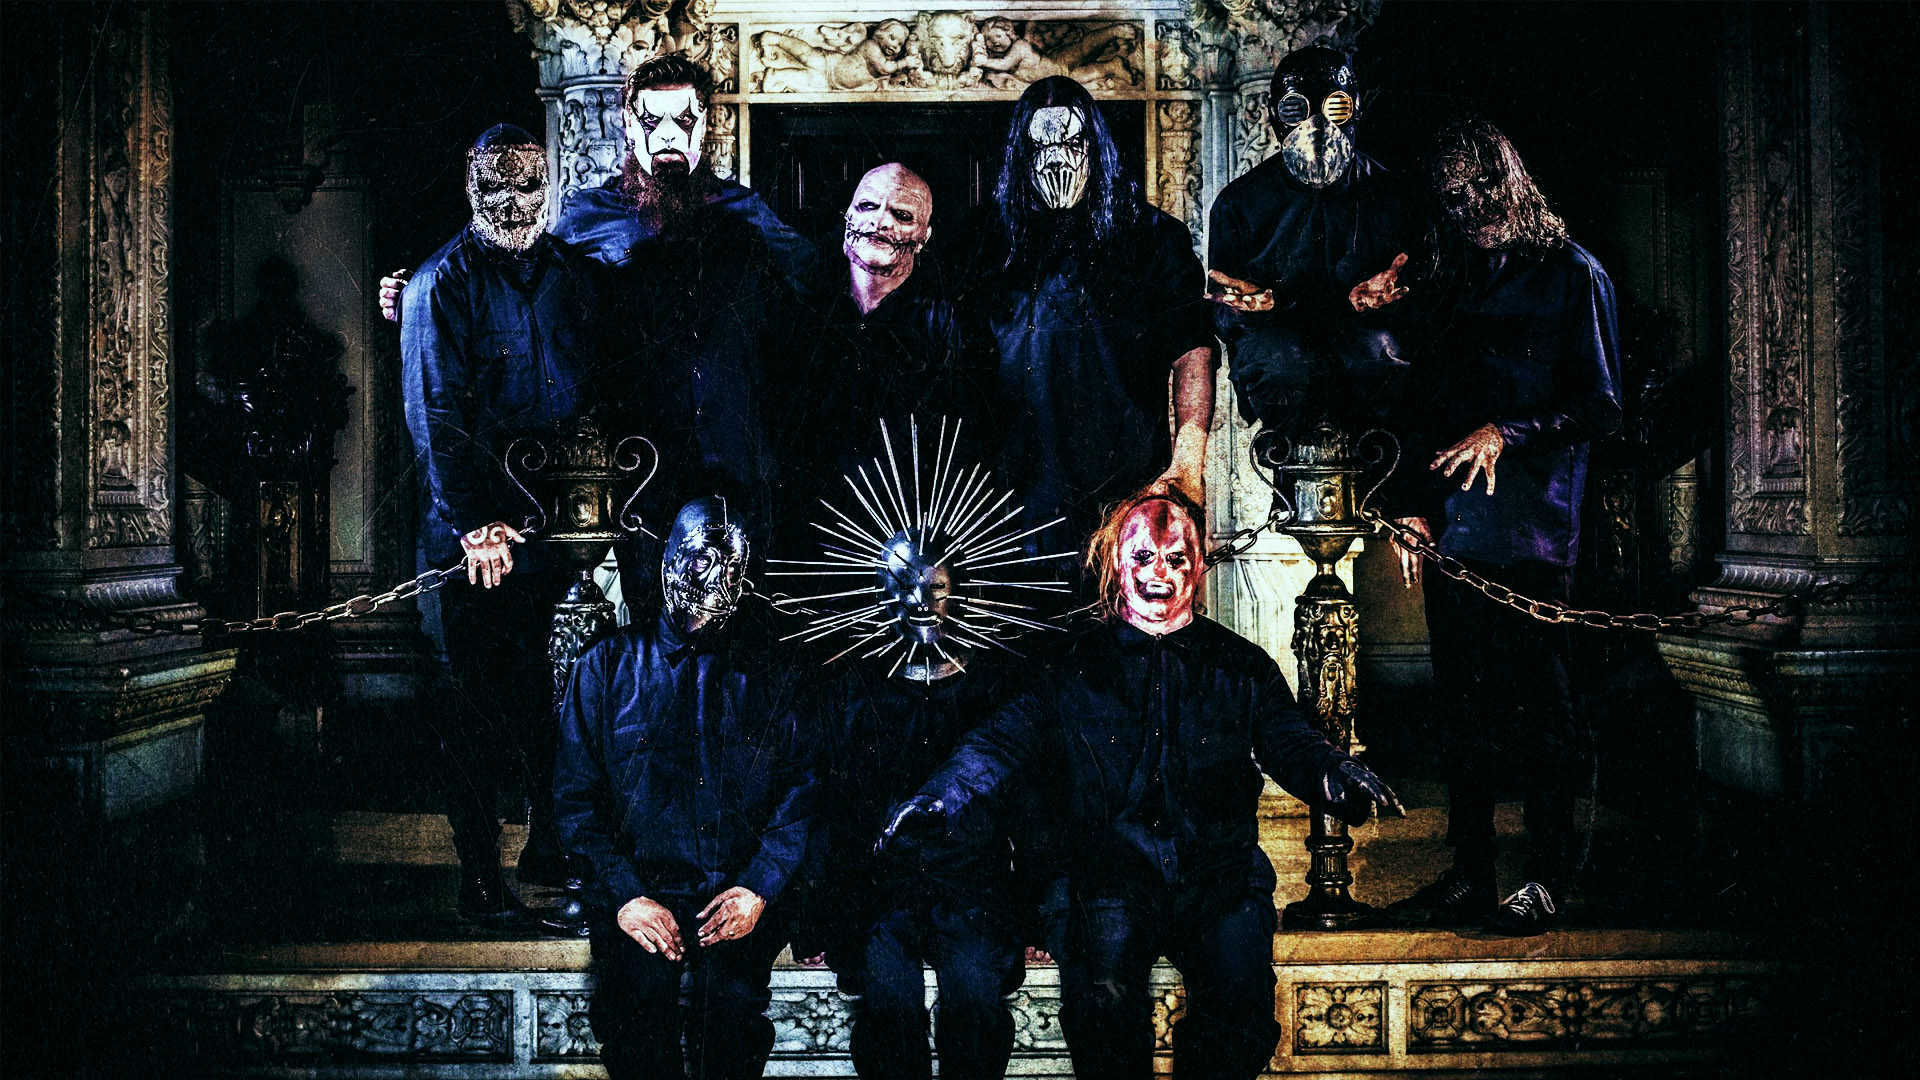 Slipknot 2016 Wallpapers - Wallpaper Cave